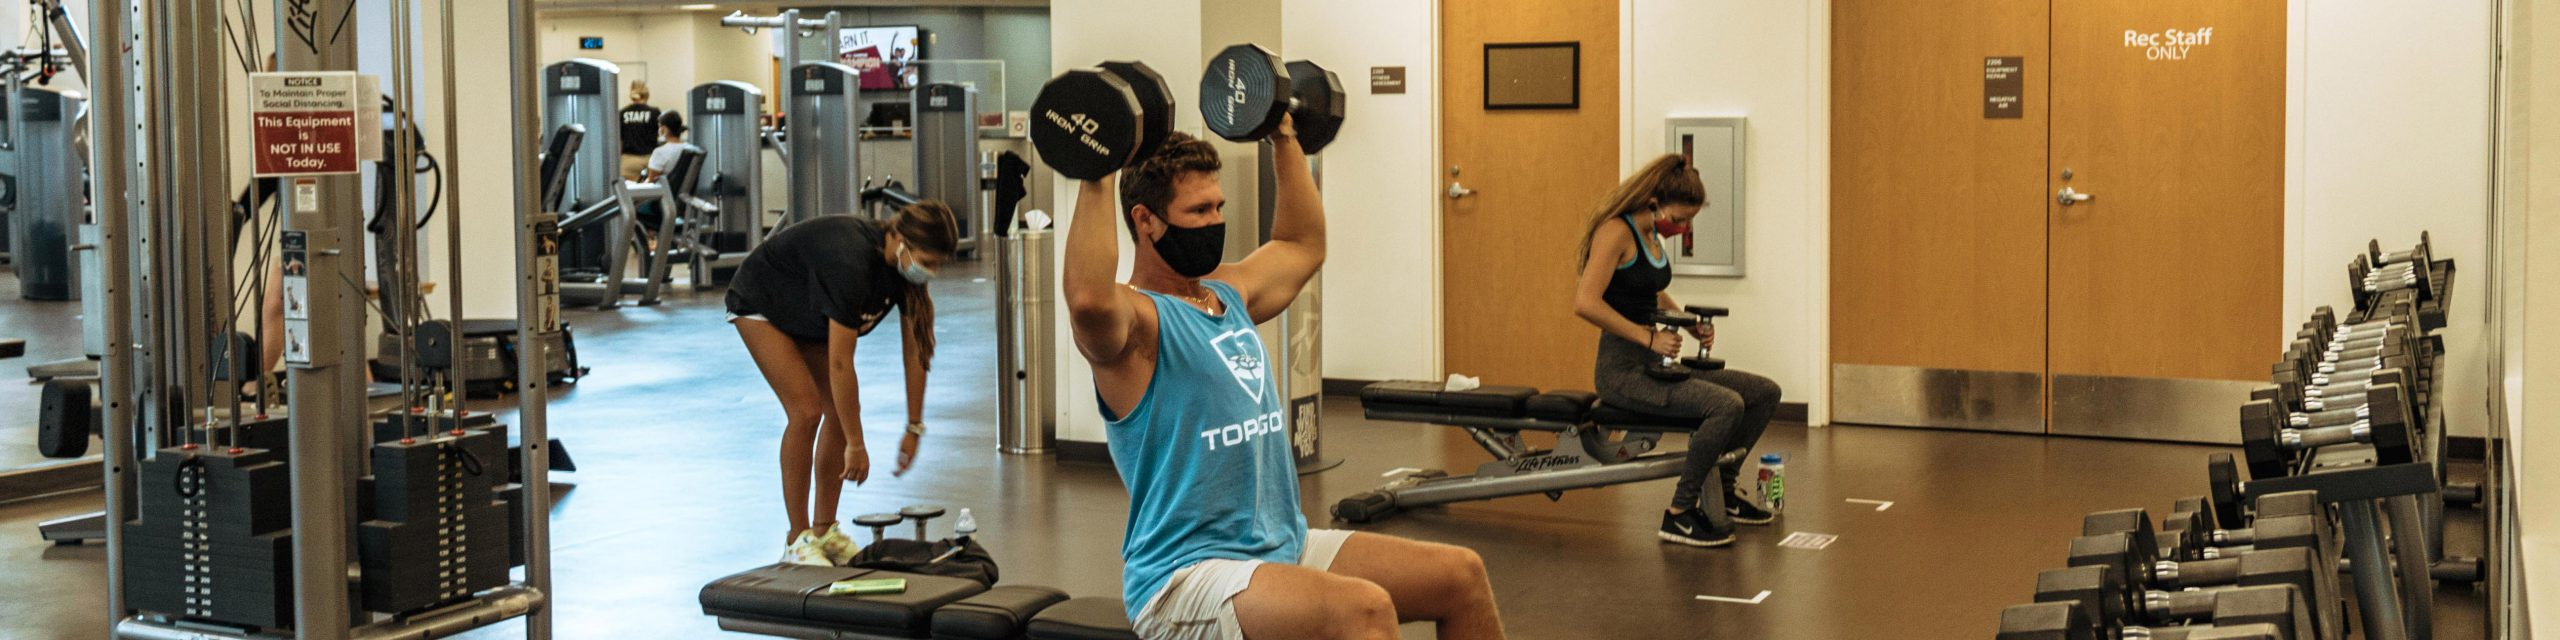 A man wearing a mask lifting weights.